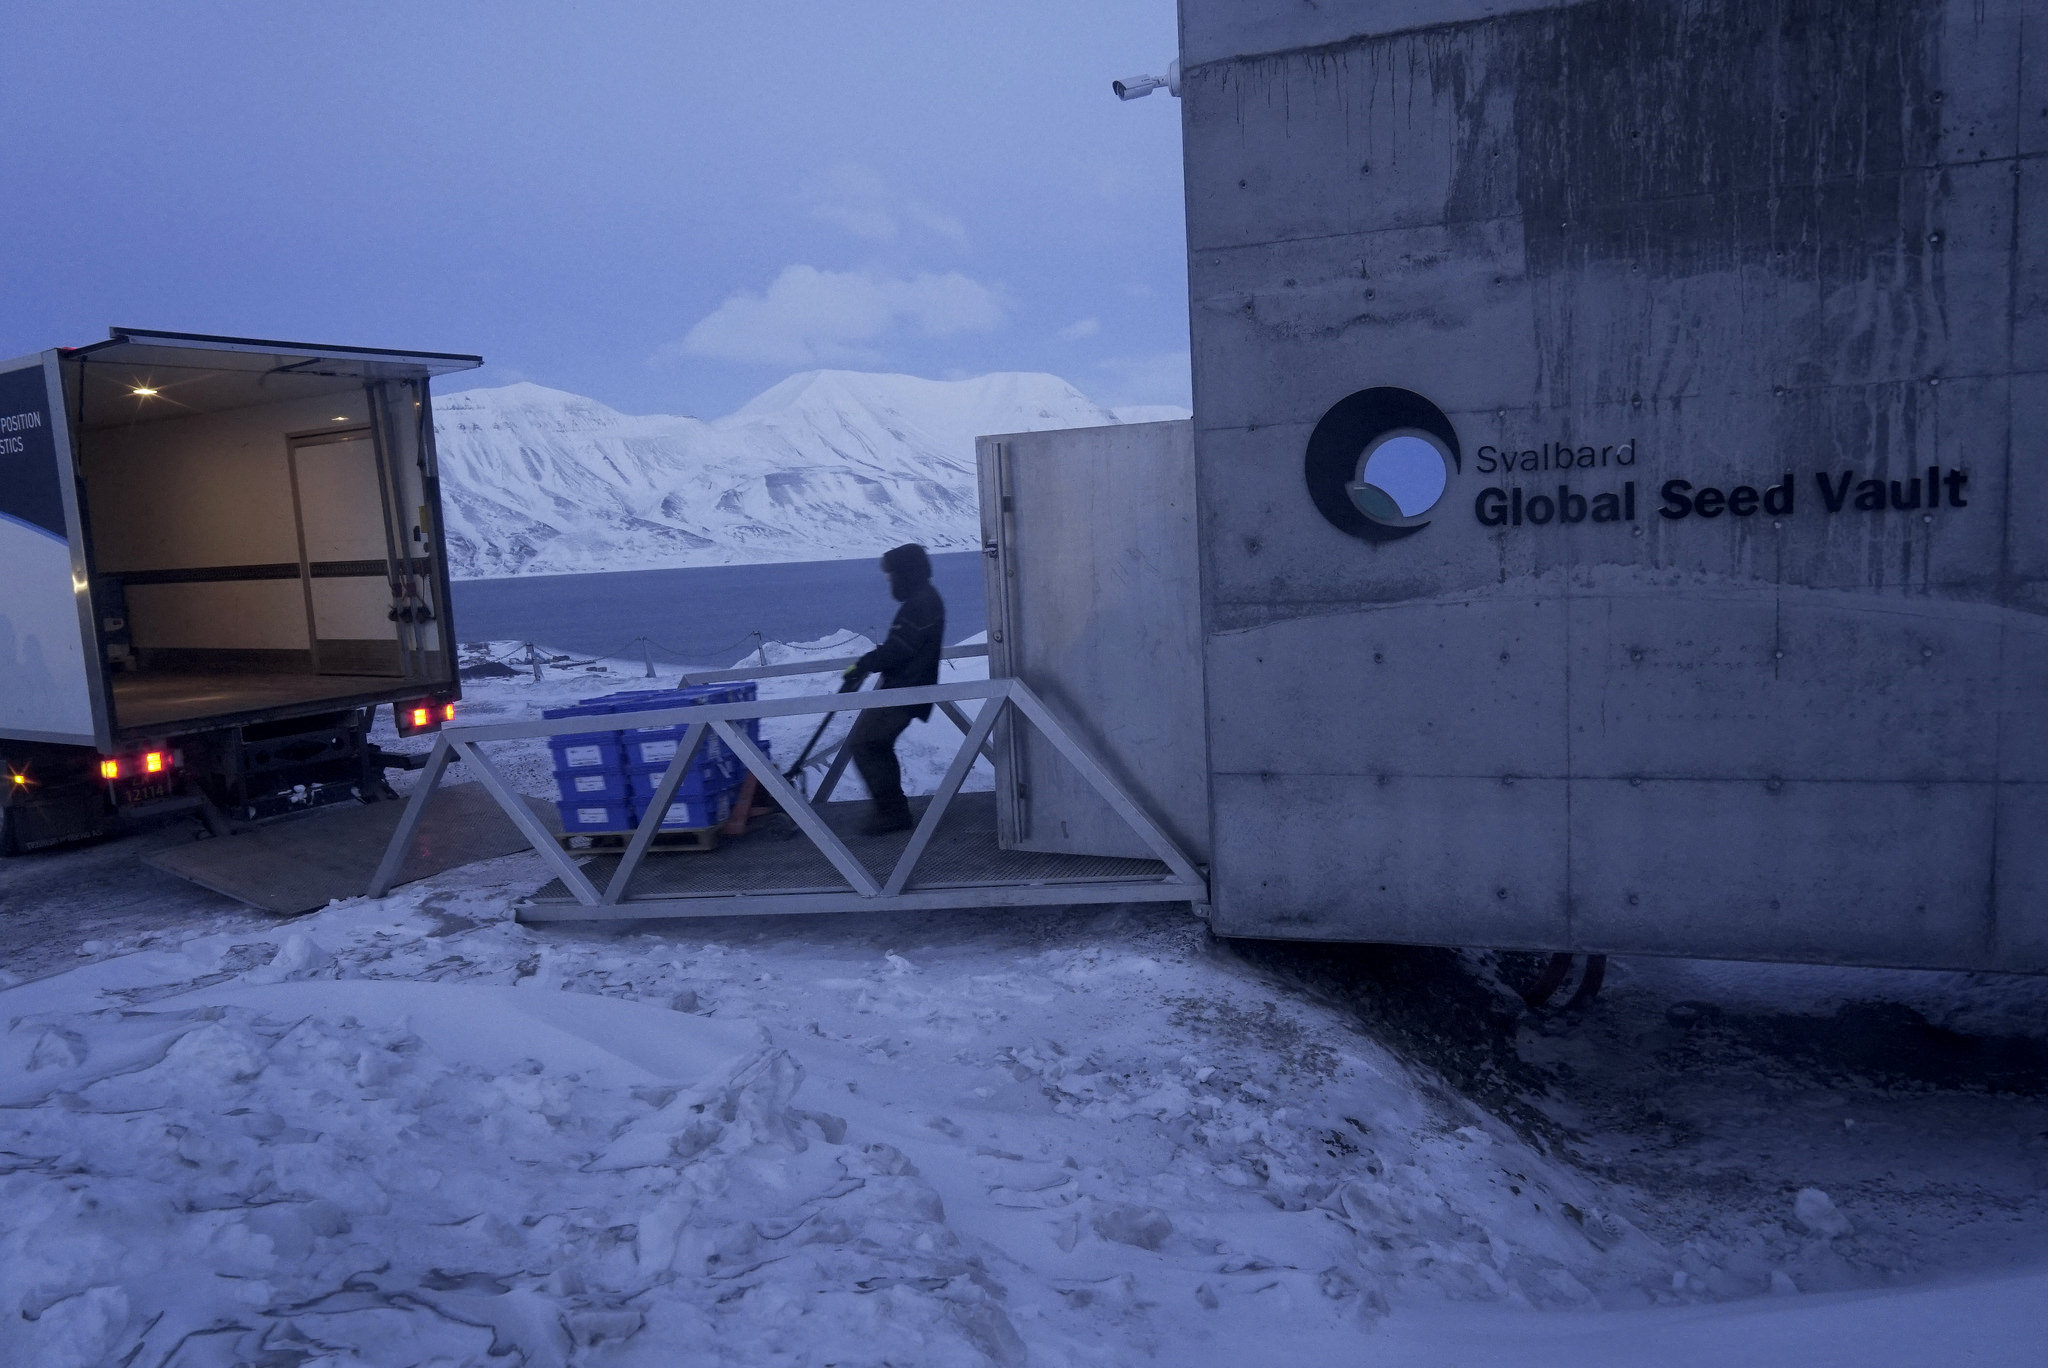 Pallets of seed boxes are ushered through Svalbard's entrance.